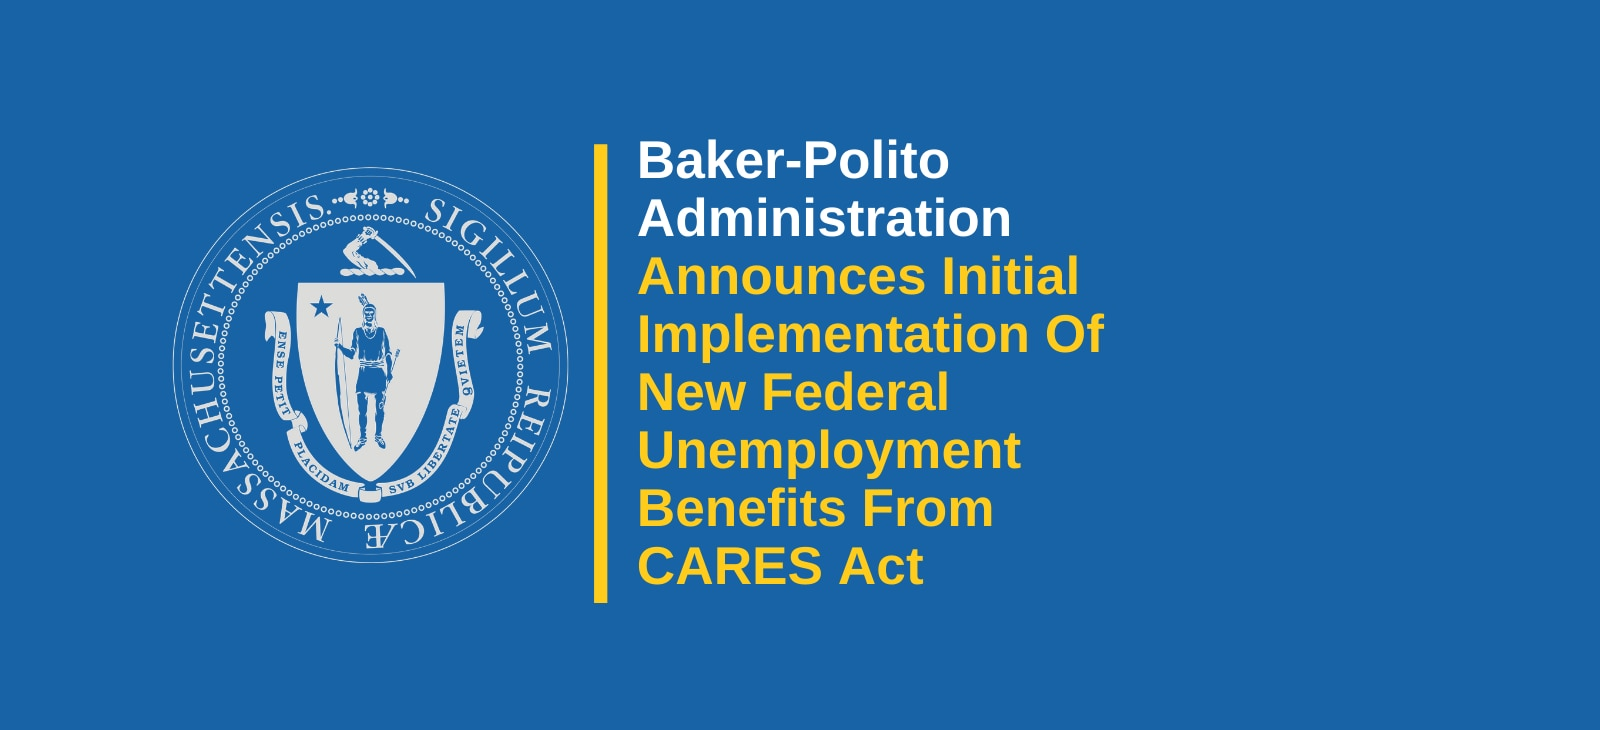 Massachusetts Announces Initial Implementation Of New Federal Unemployment Benefits From CARES Act